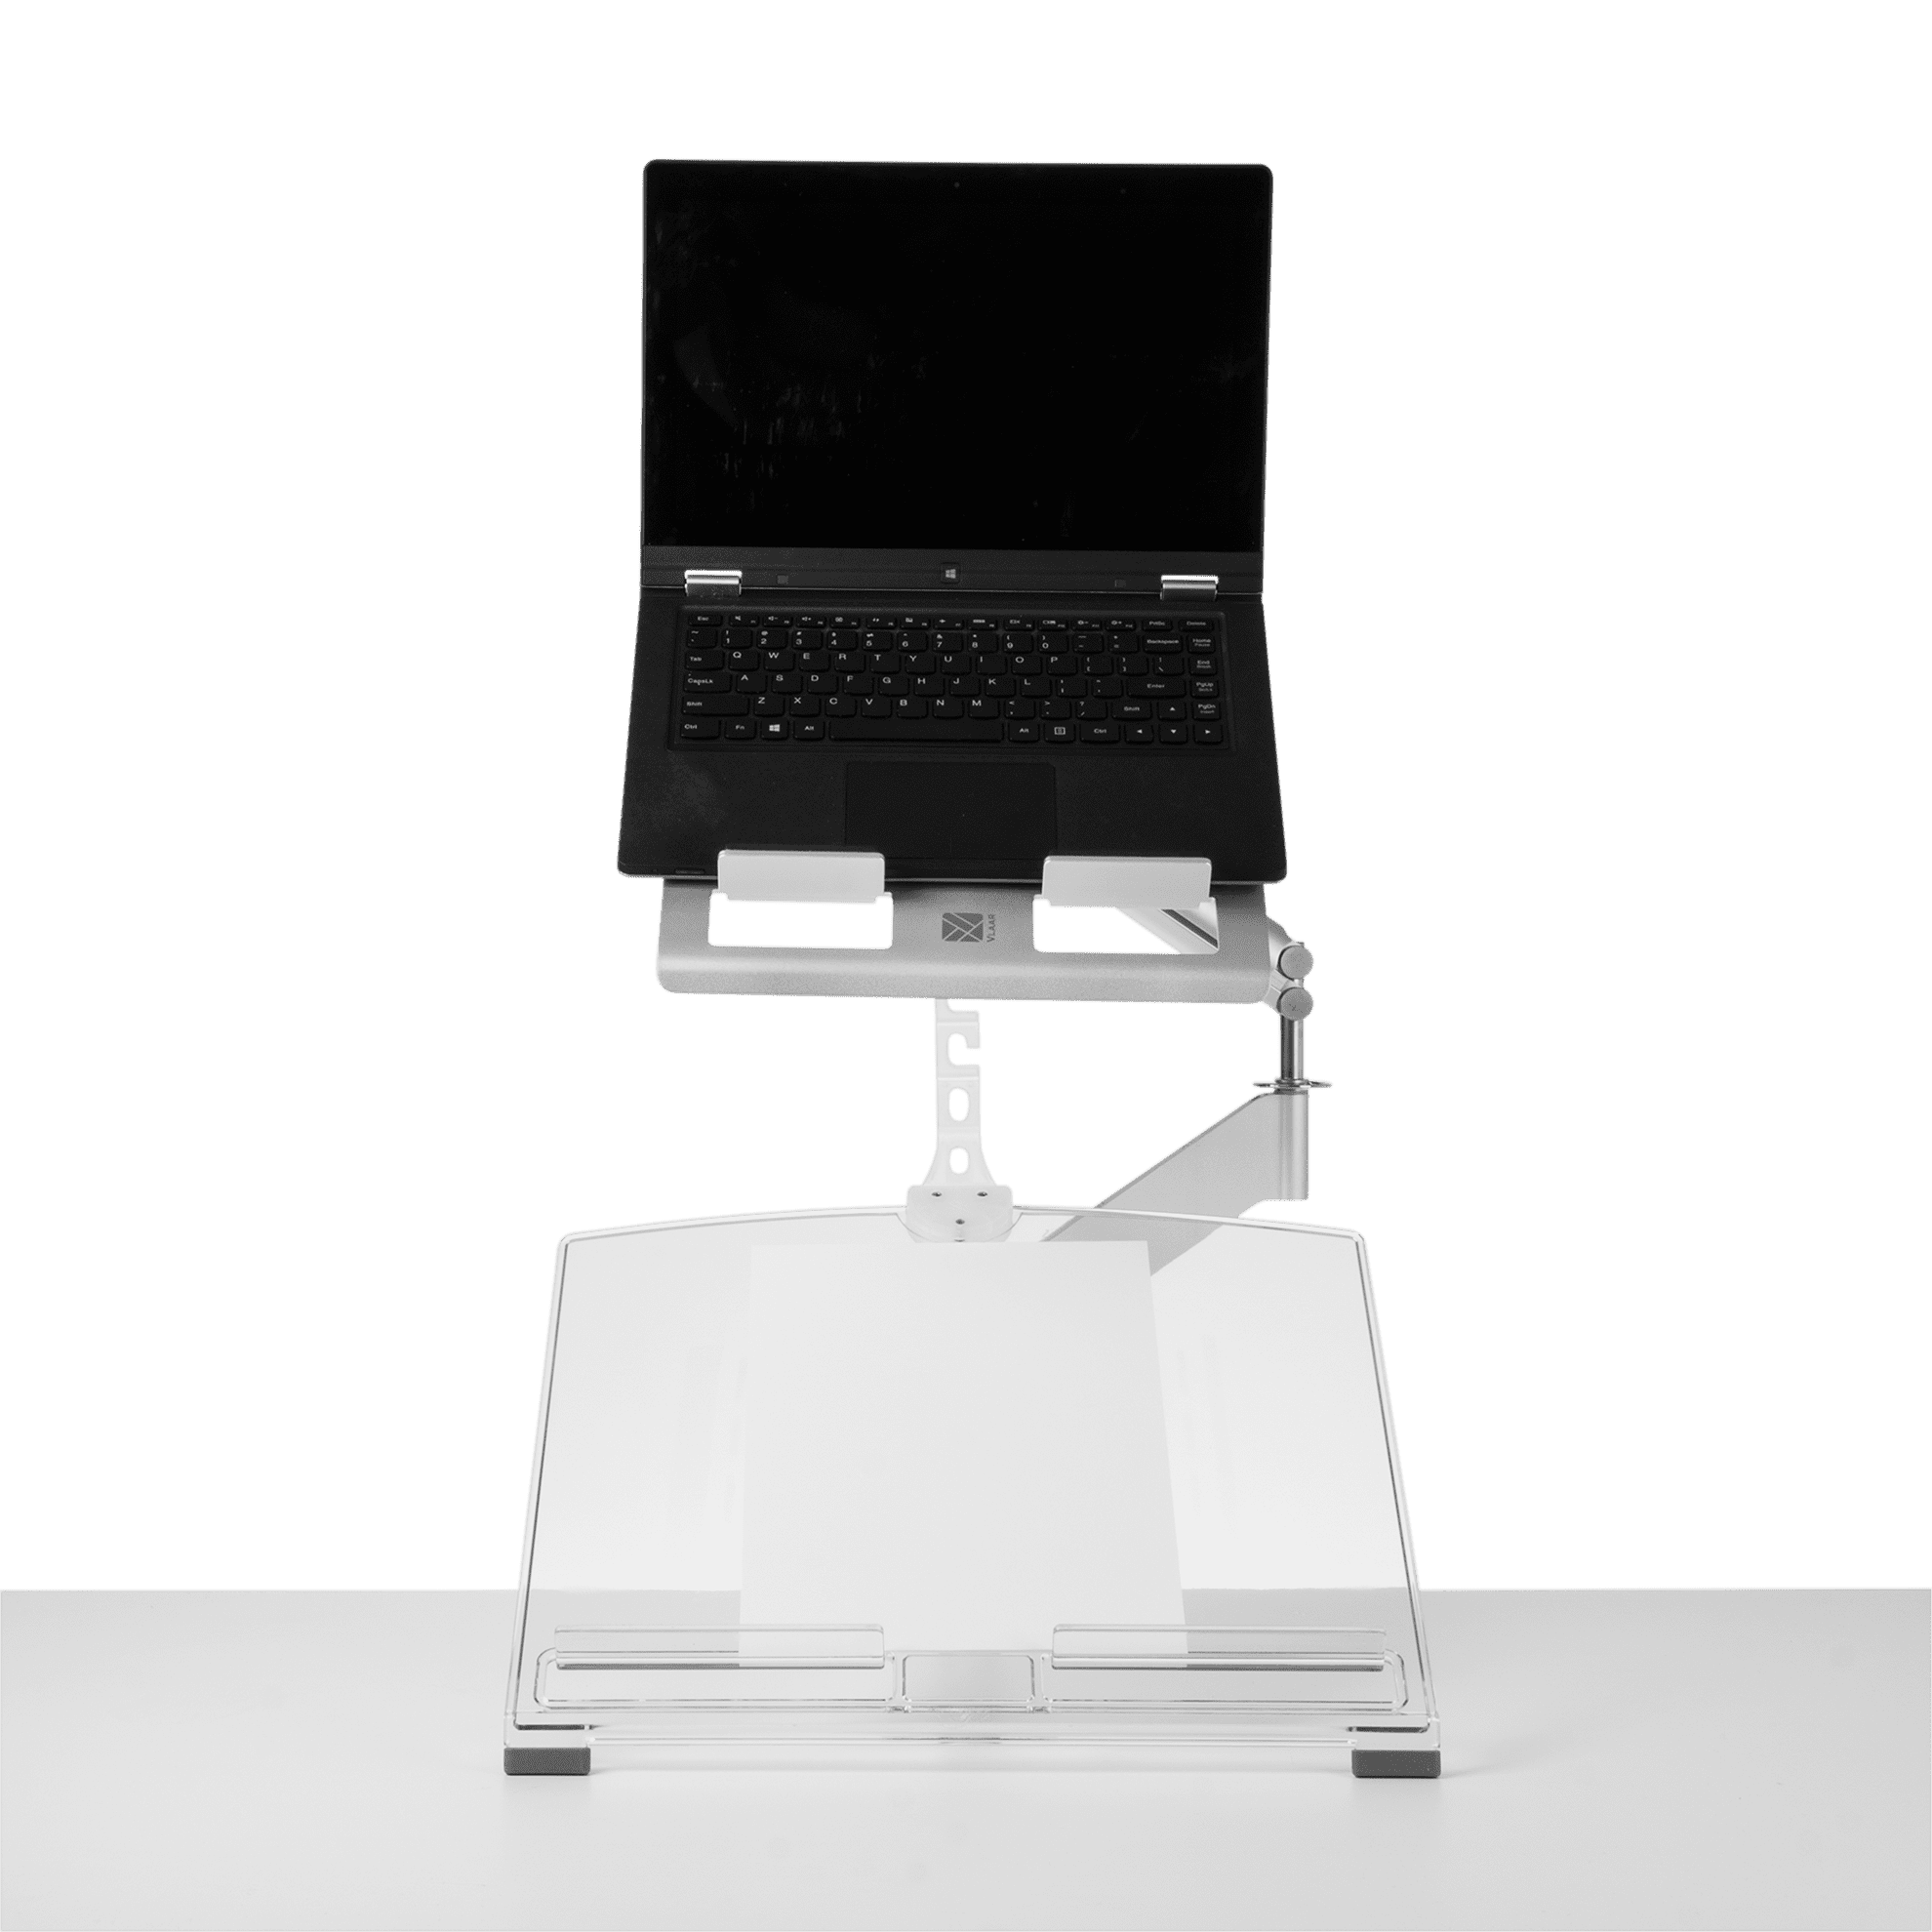 R-Go Morelia Notebook Holder, Tablet holder, silver - 2